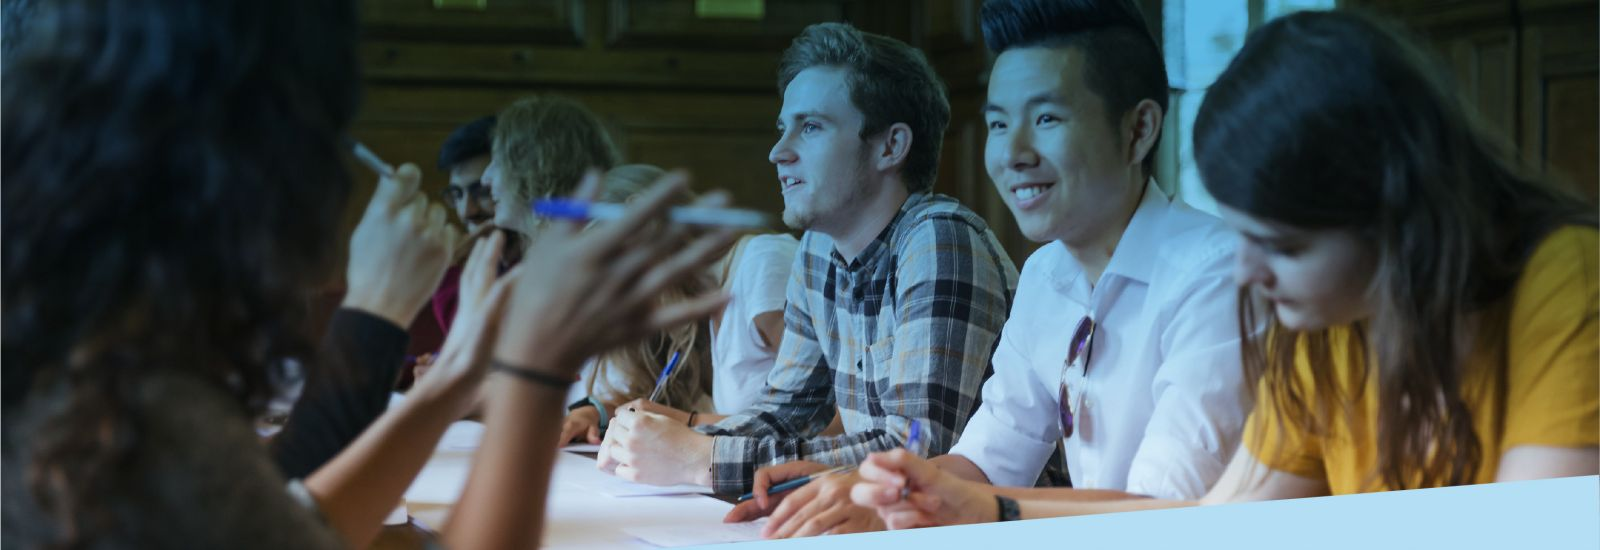 A large group of students chatting while writing in a college dining hall